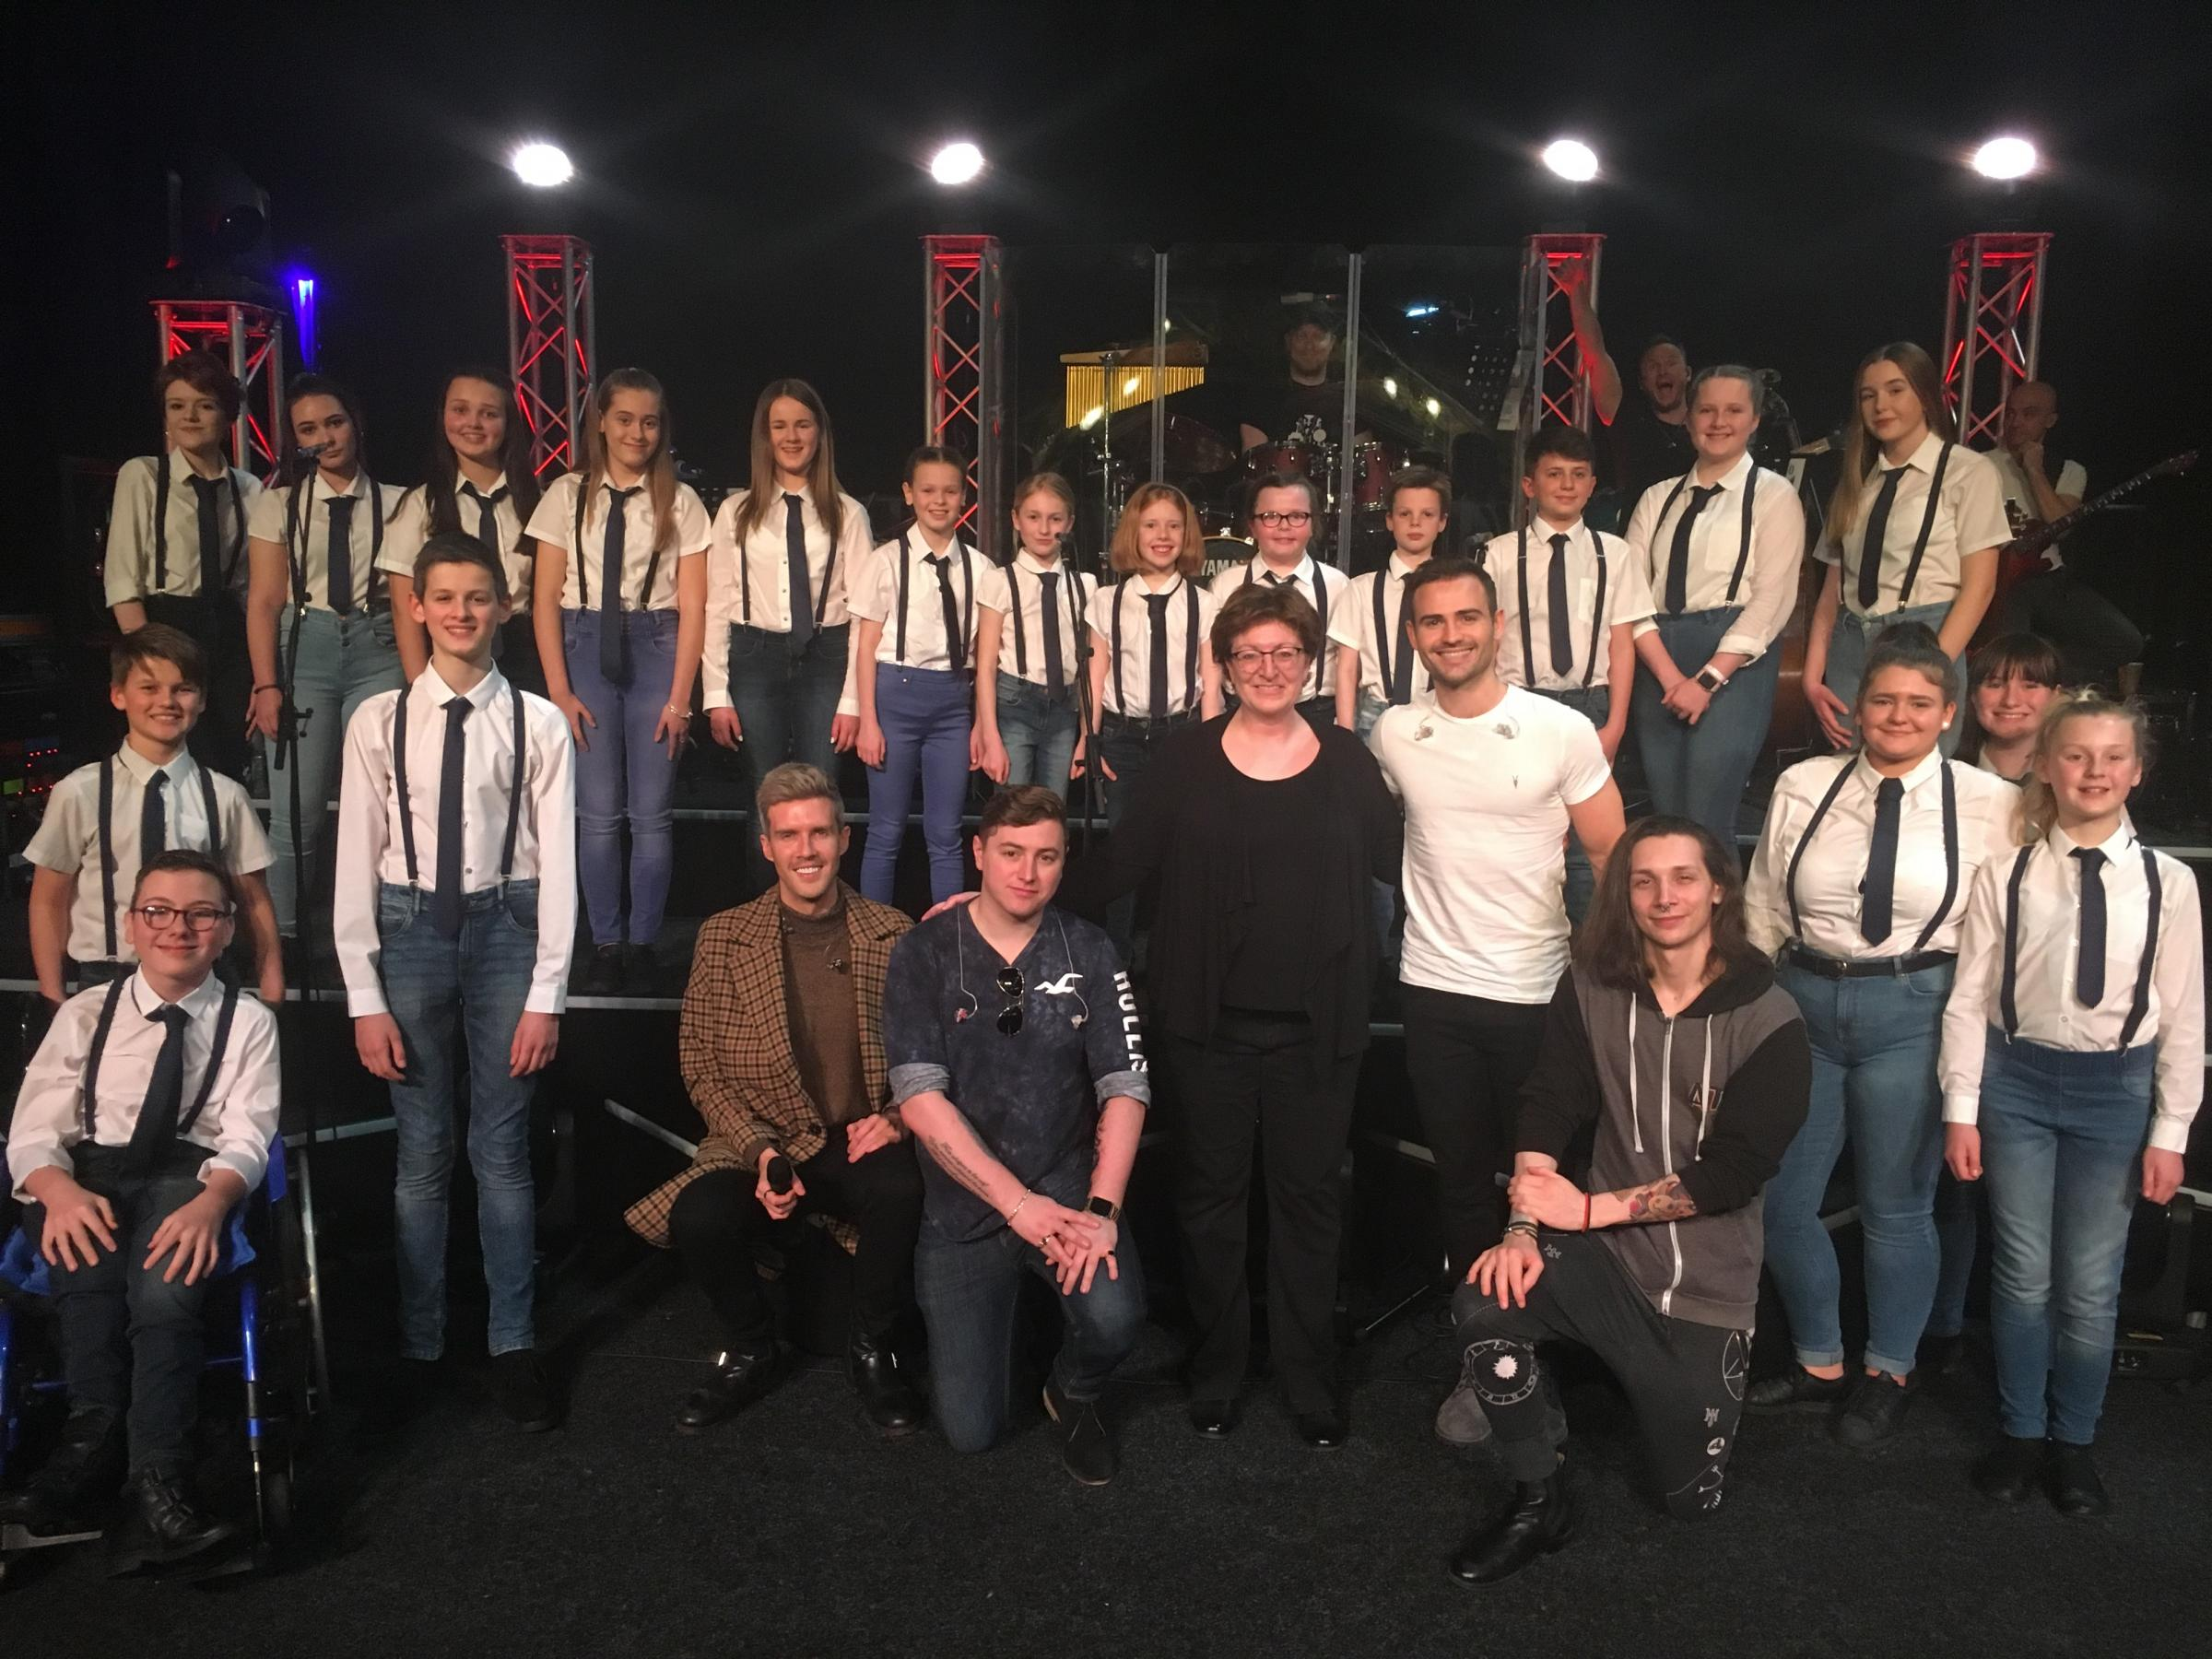 Choir performs with BGT stars